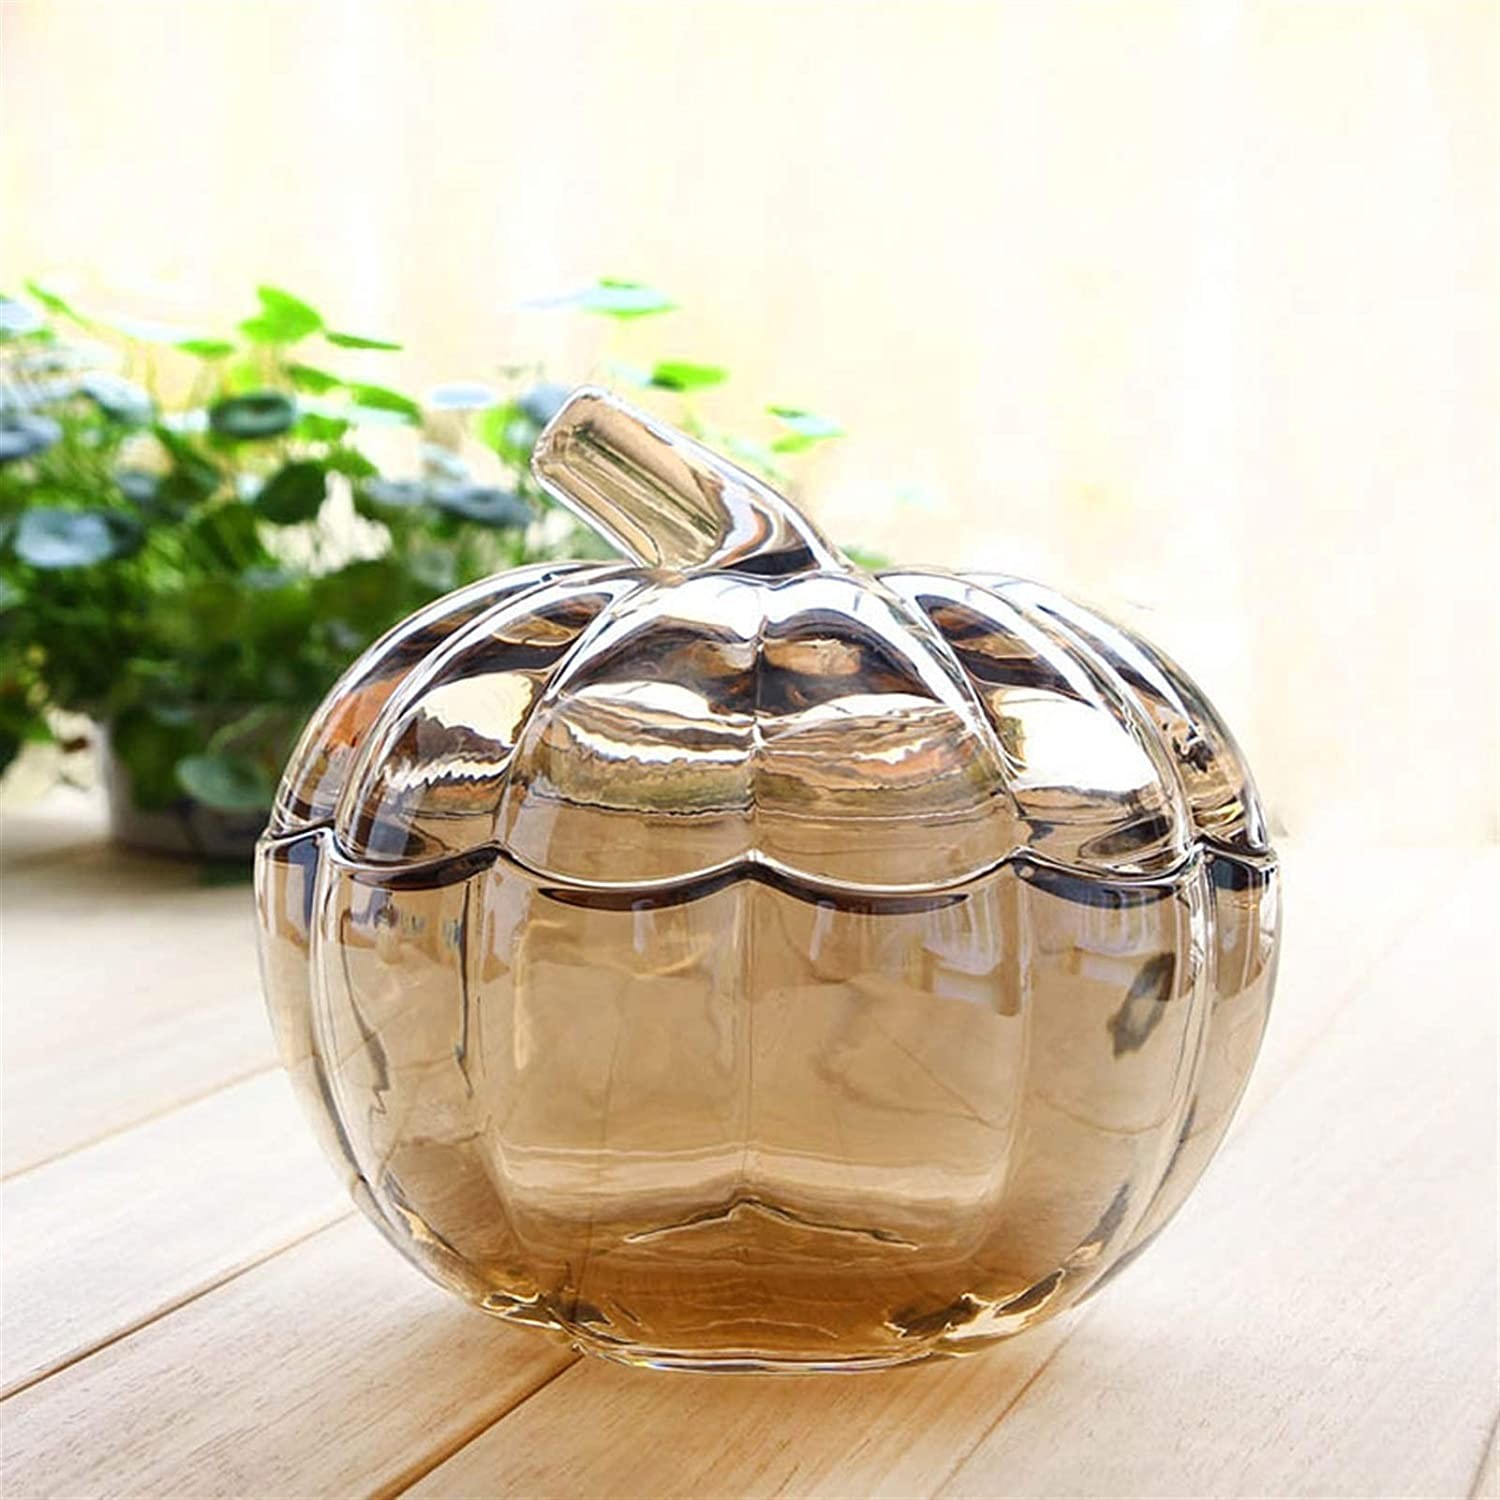 Clearance SALE Limited 40% OFF Cheap Sale time AI XIN Glass Candy Jar with Jewelry lid Box Dis Food